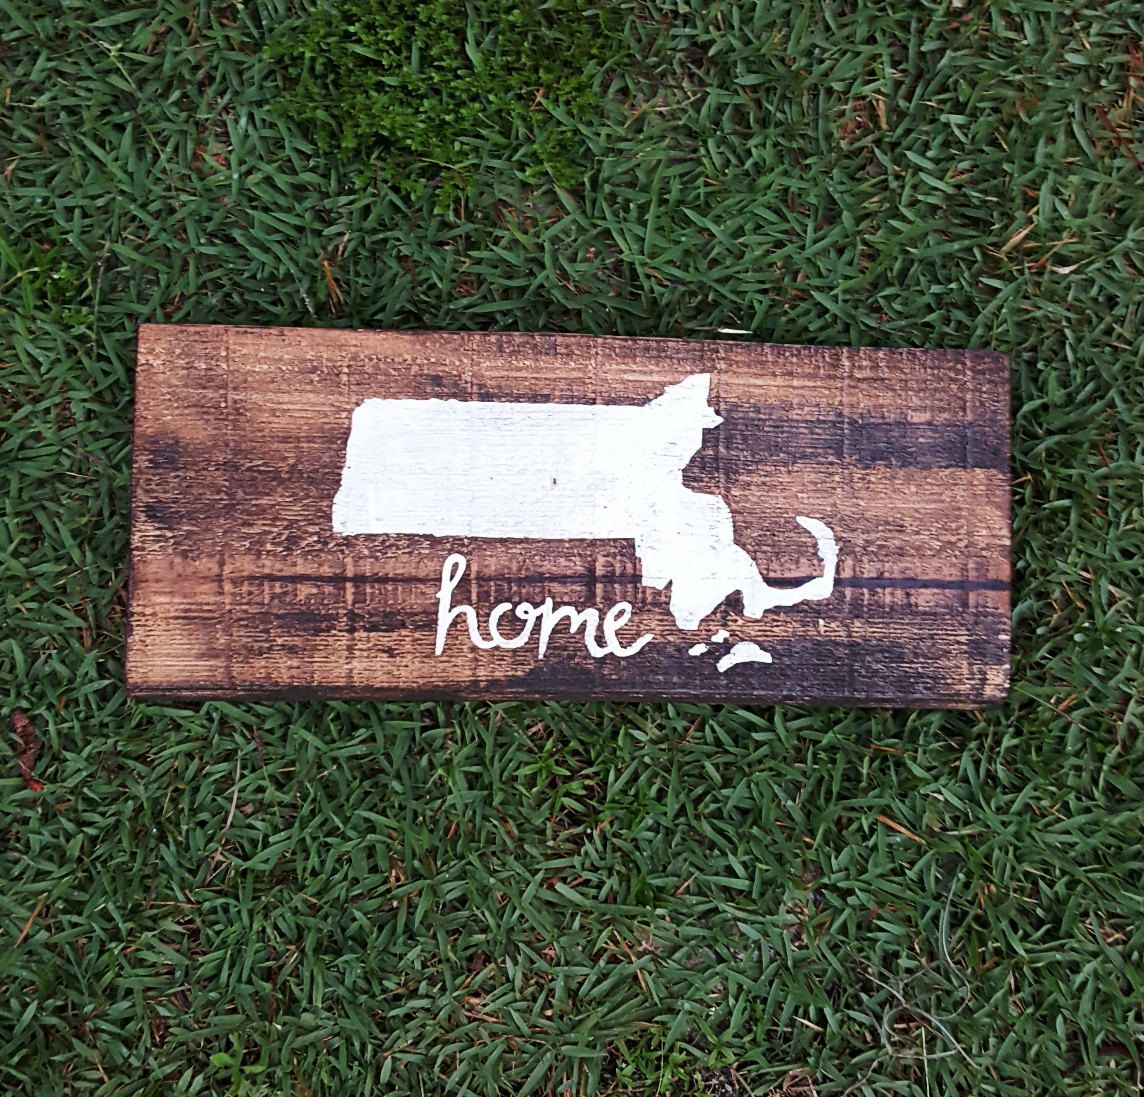 Massachusetts State Sign Reclaimed Wood Sign Rustic Sign Home Decor Gift  Ideas by kanndidkreations on Etsy - Massachusetts State Sign  Reclaimed Wood Sign  Rustic Sign